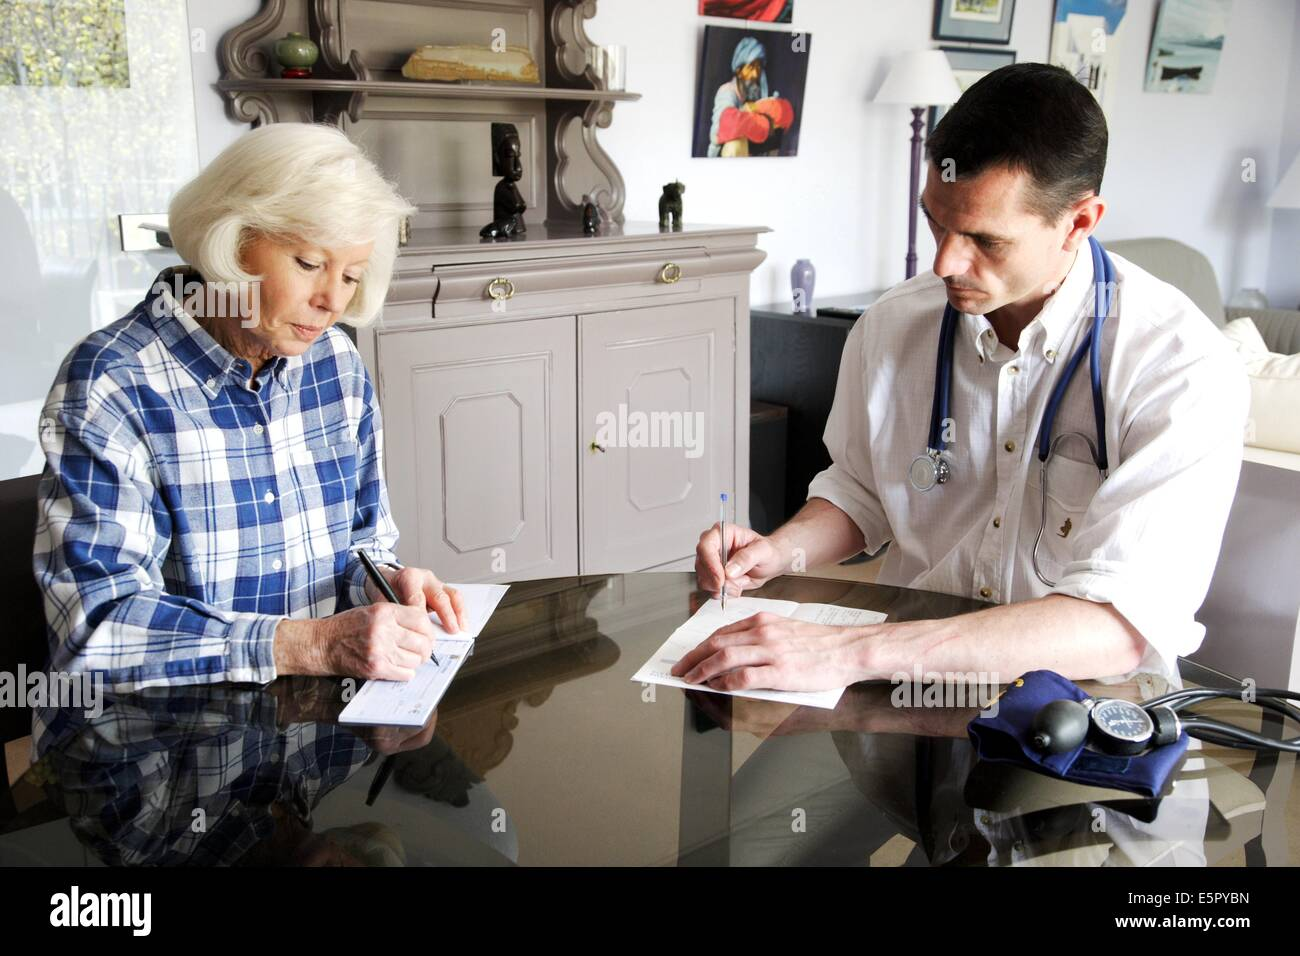 Patient paying consultation fees. - Stock Image